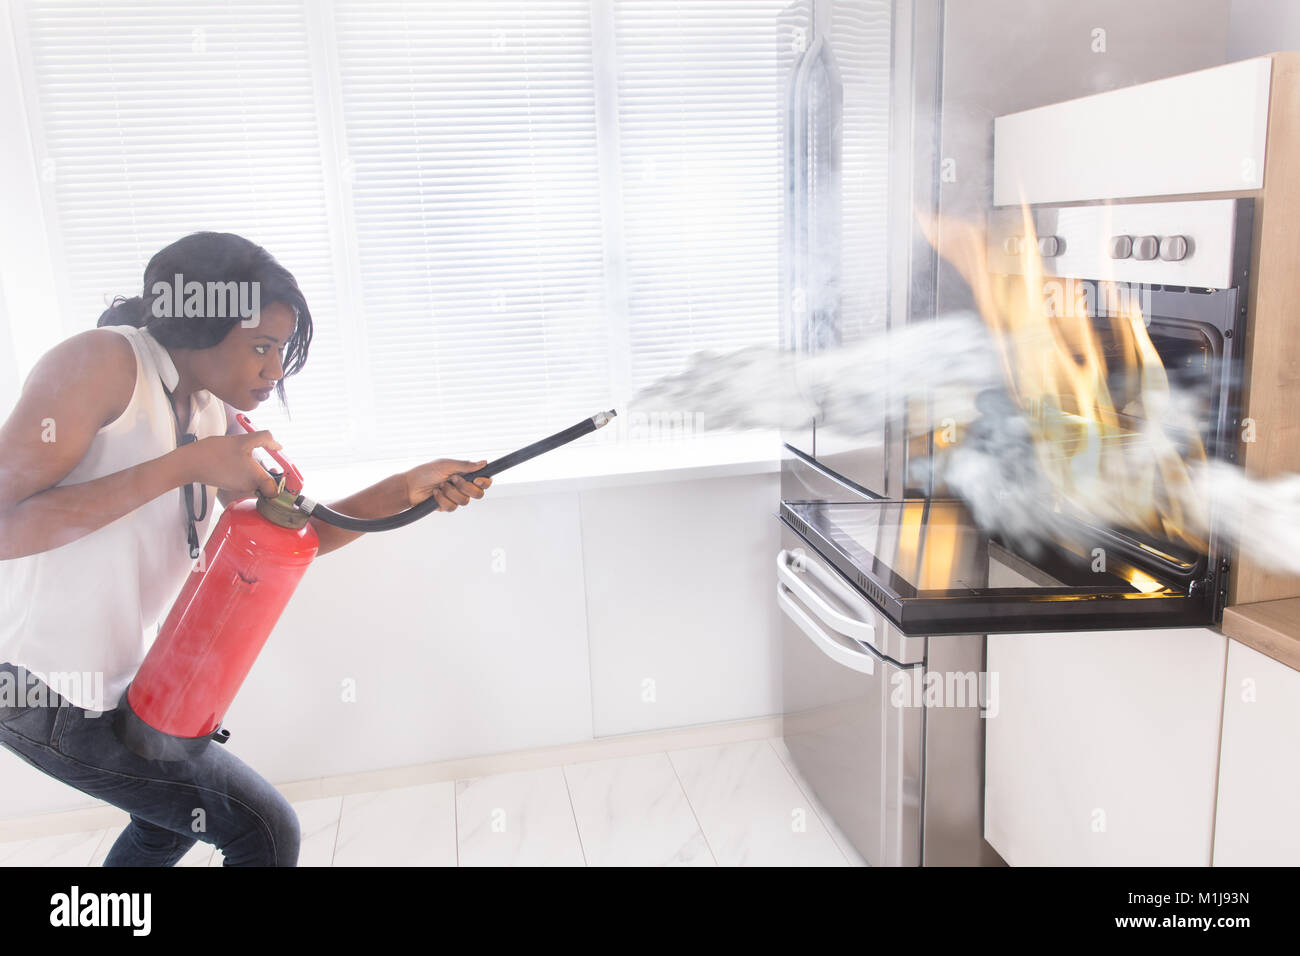 fire extinguisher for kitchen use outdoor cabinet doors accident stock photos and